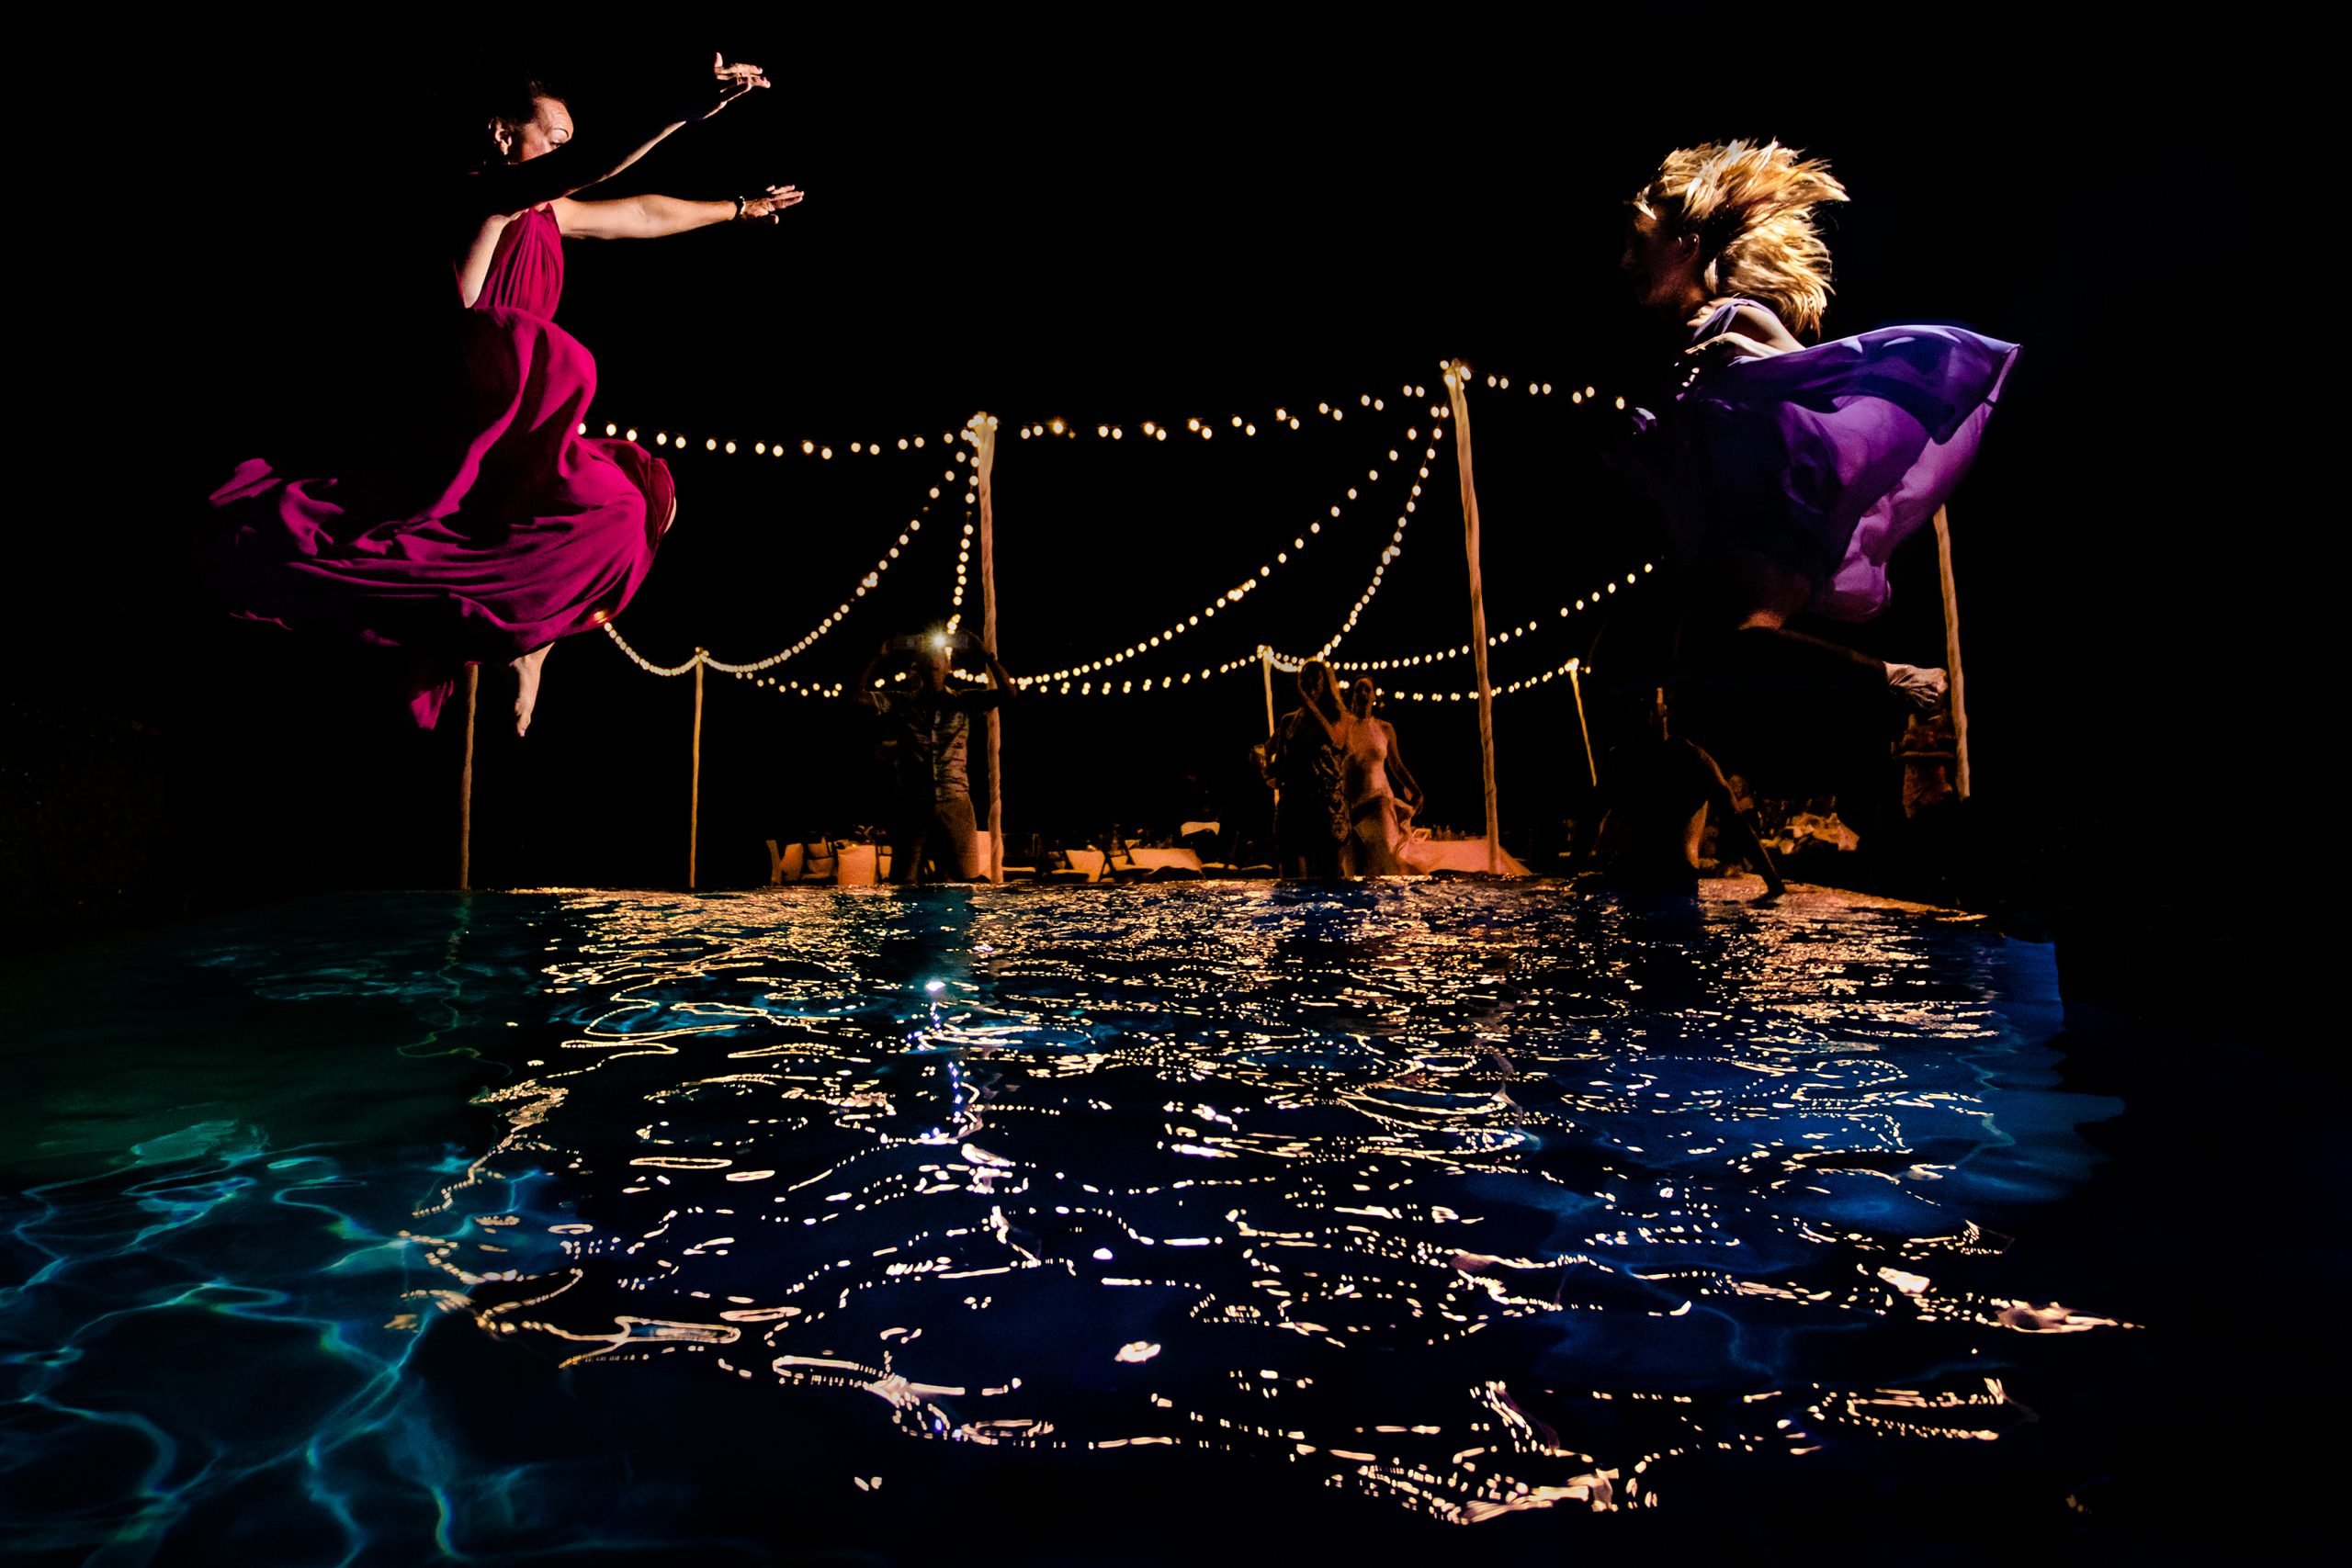 Wedding guests jumping into the pool at reception party